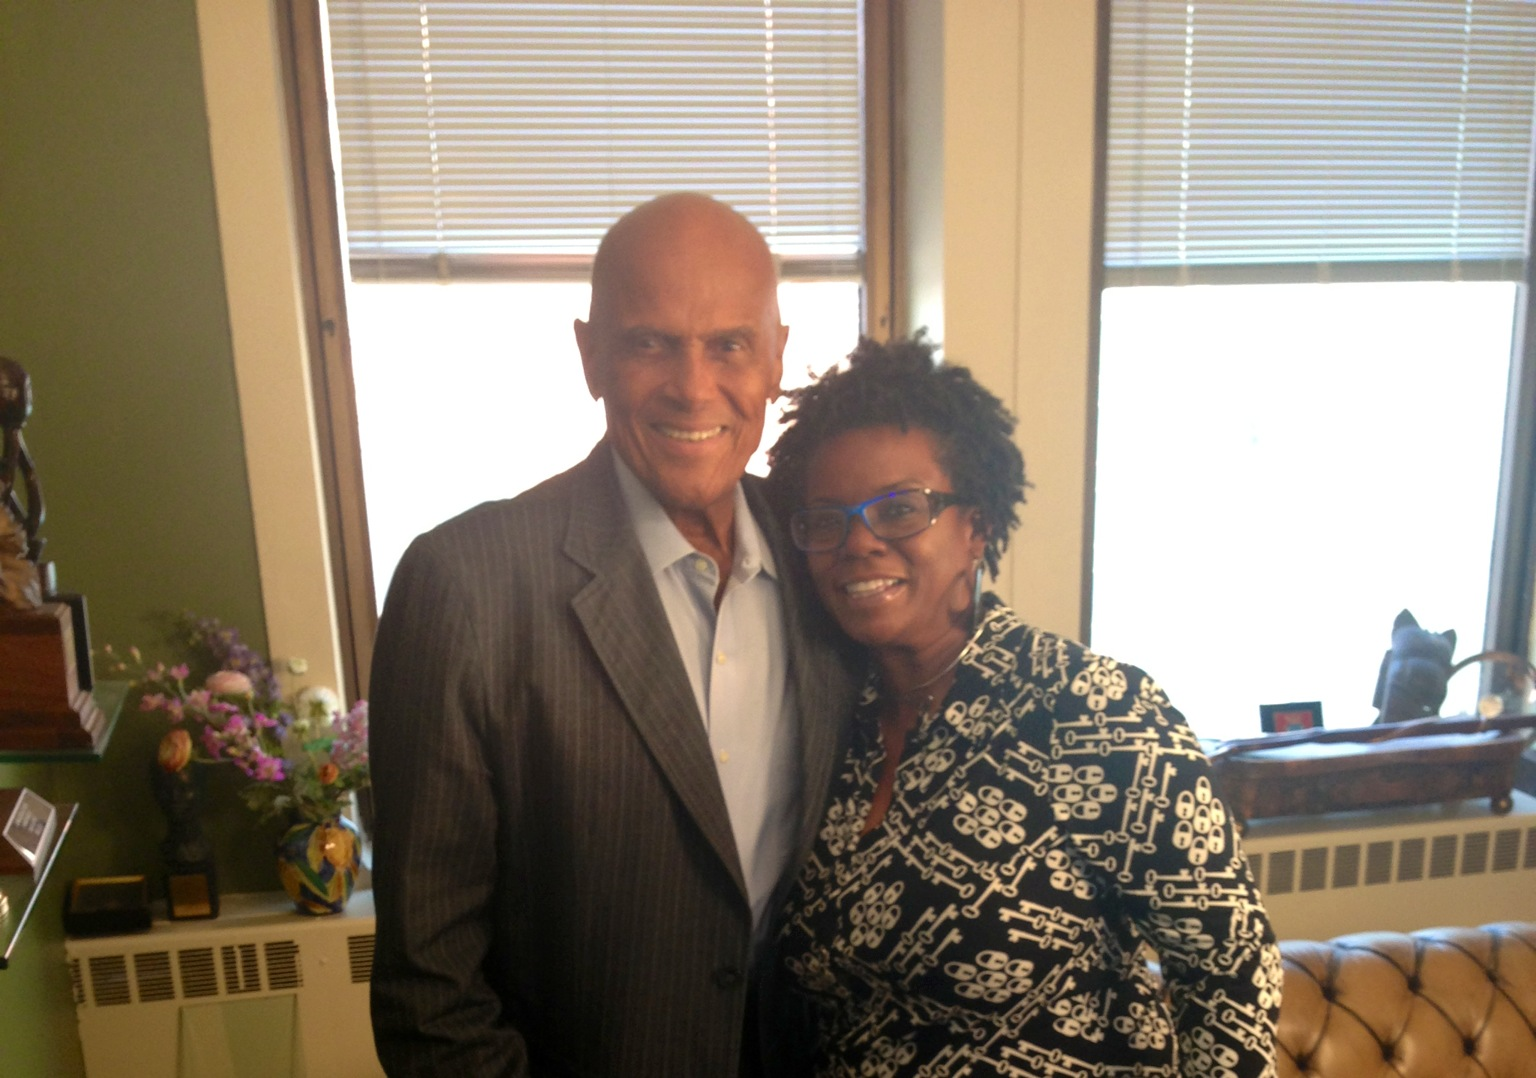 Hanging with Harry Belafonte during production shoot for NABJ's 2013 Journalist of the Year honoree, Roland Martin.